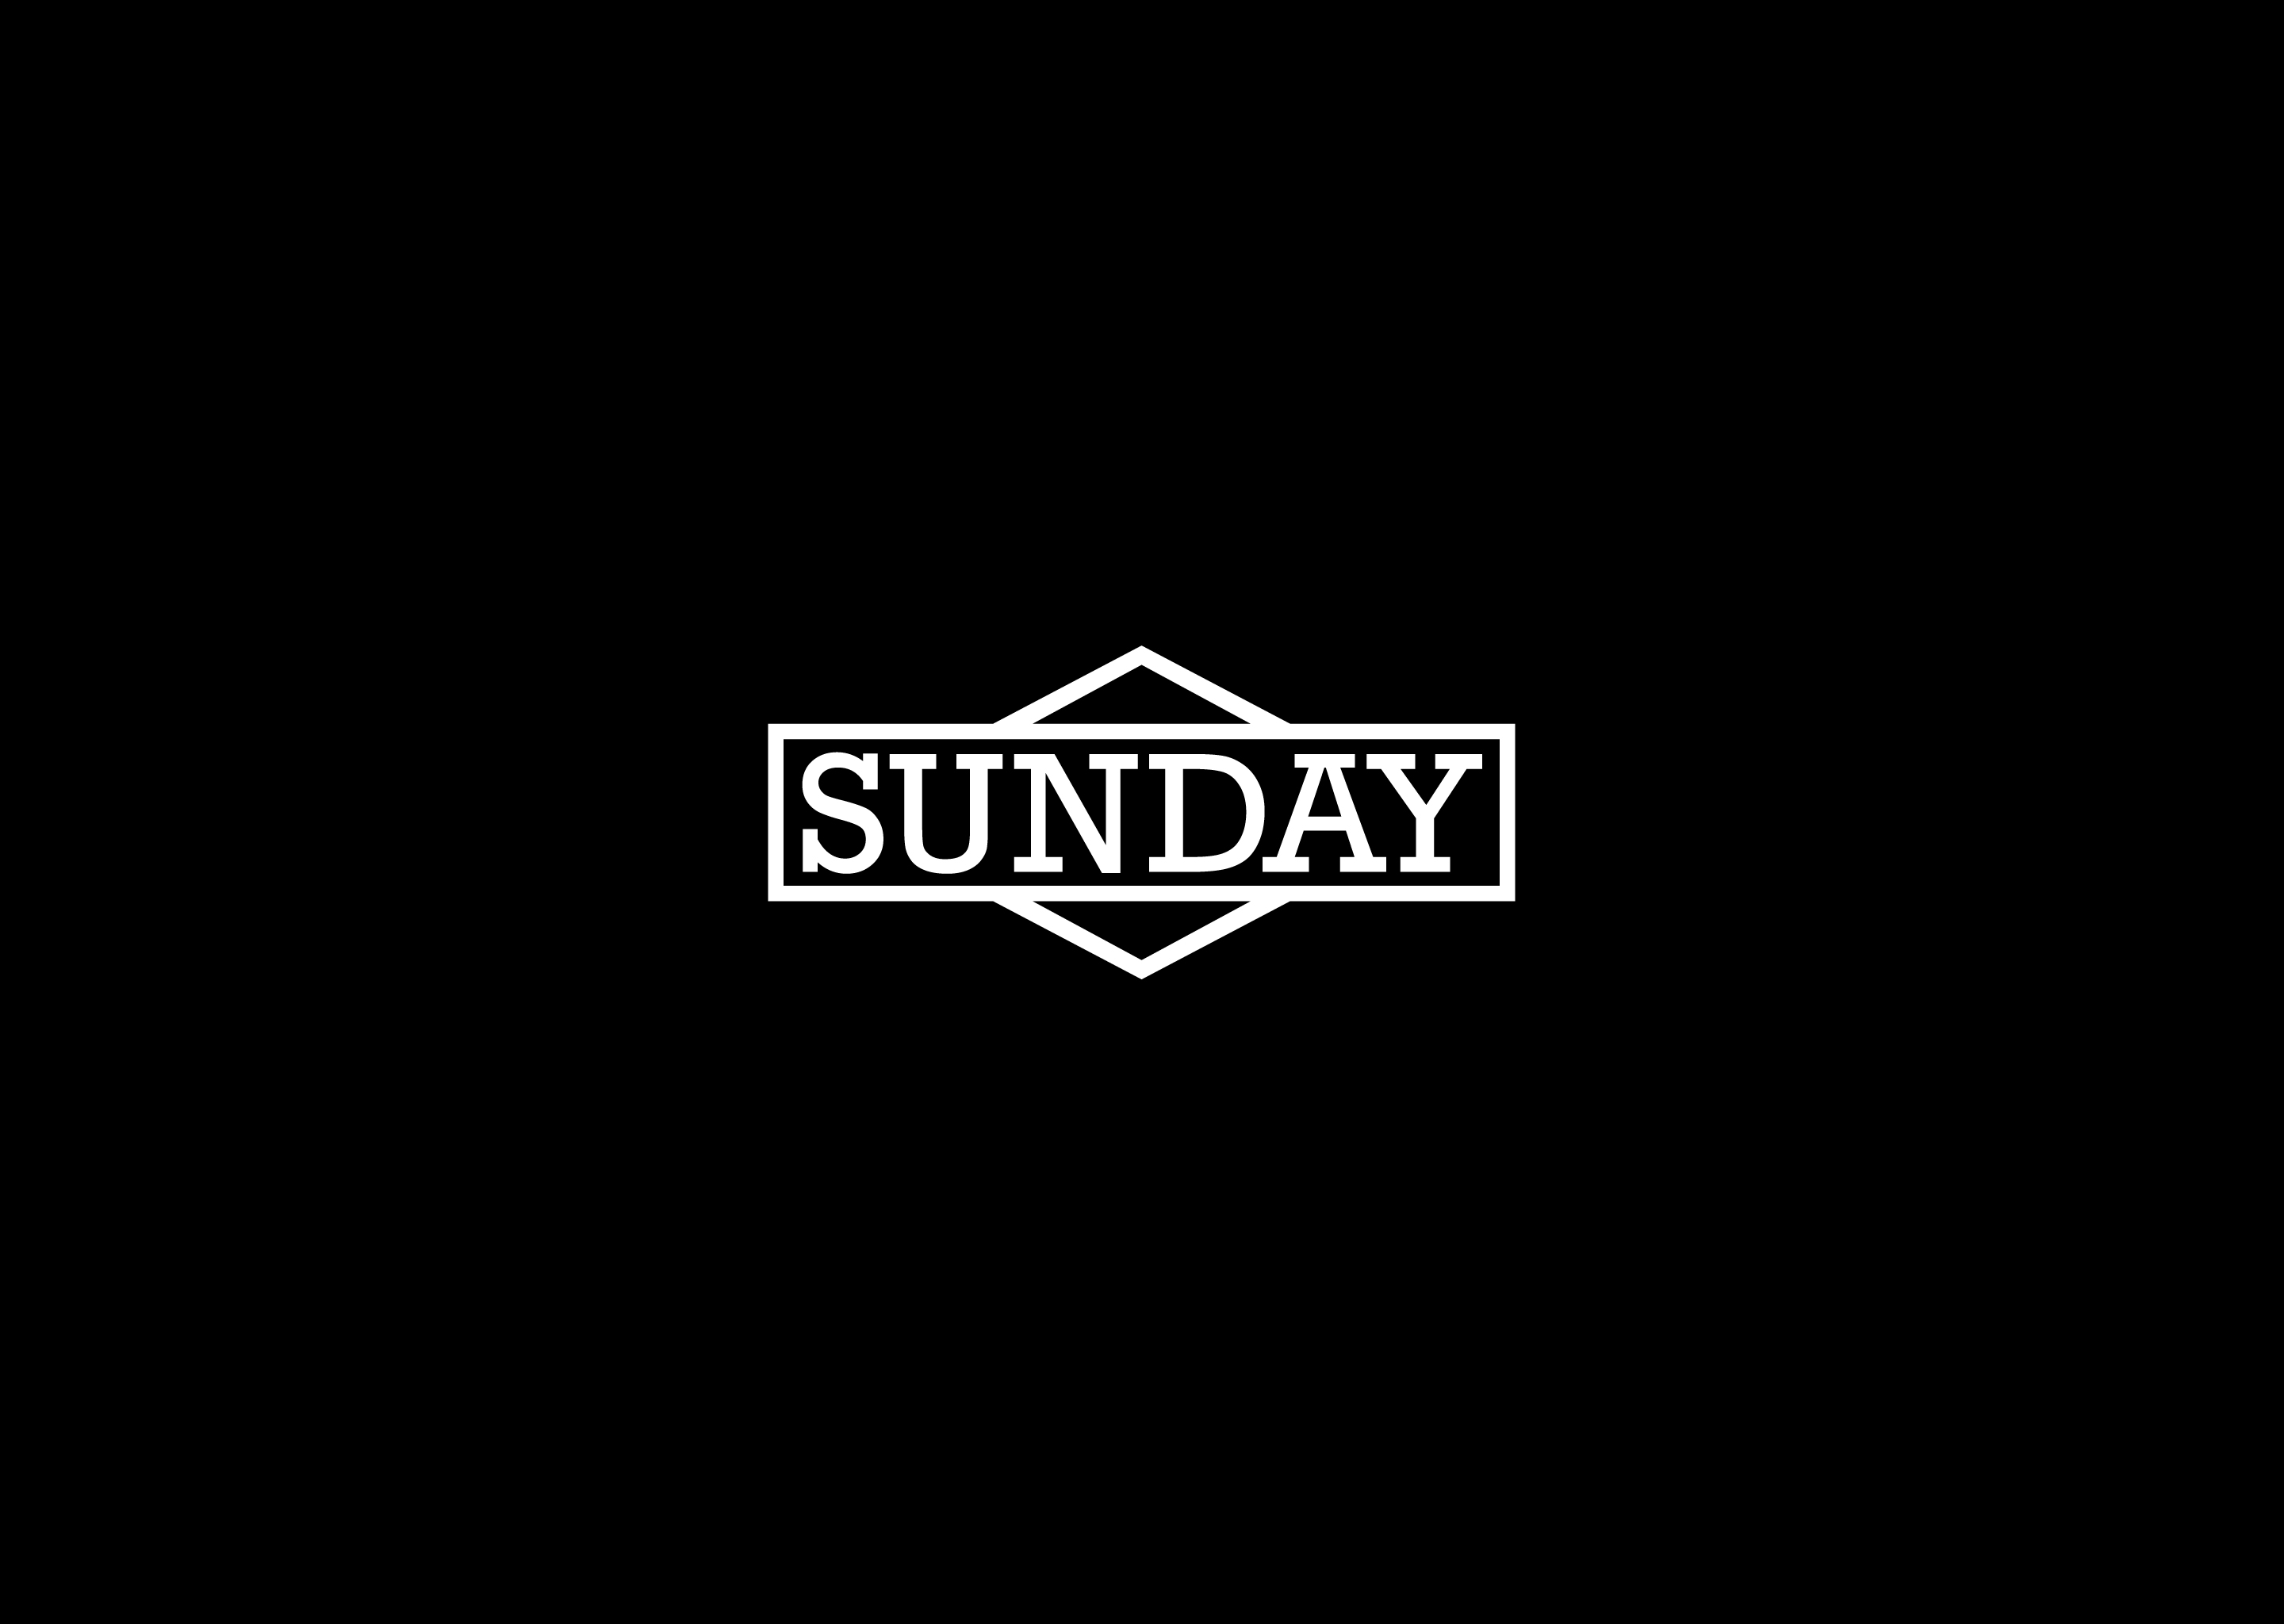 sunday typography wallpaper background 64231